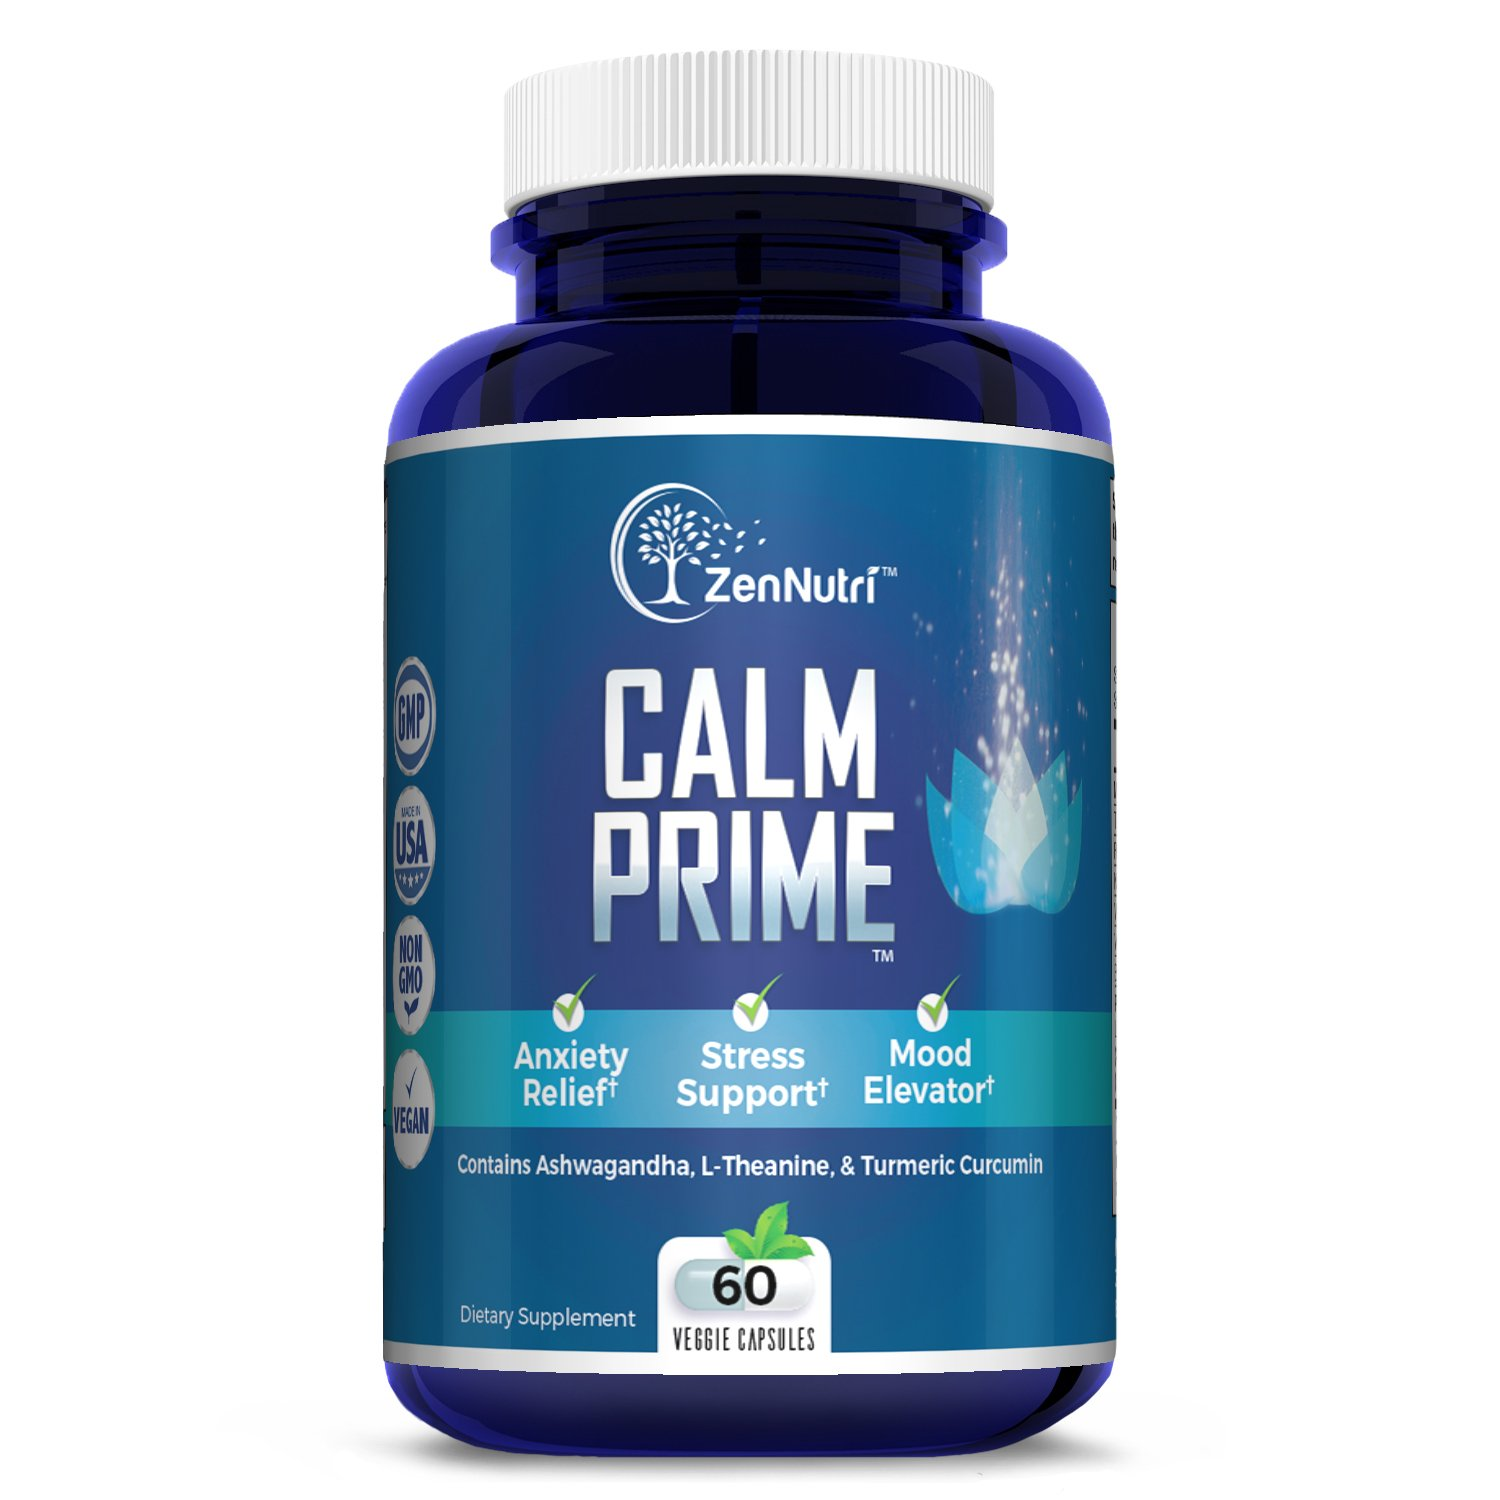 Calm Support, Anti Anxiety, Stress Relief, Mood Enhancer Supplement - Natural Vegan Formula - Premium Calming Ingredients - Magnesium, Ashwagandha, L-Theanine, Turmeric Curcumin and More, 60 Count by ZenNutri